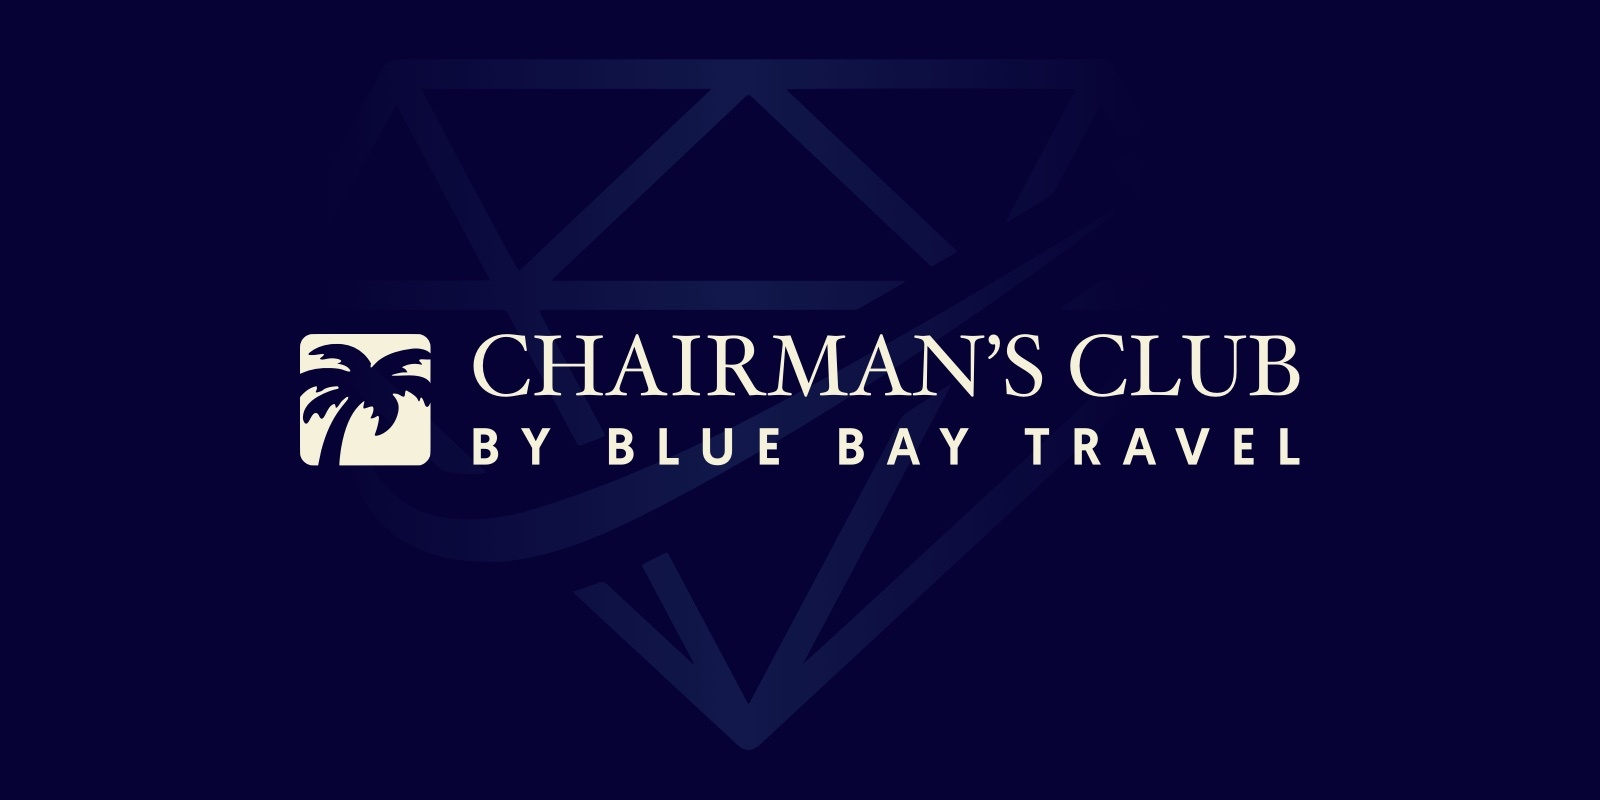 Blue Bay Travel are excited to announce the launch of the new Chairman's Club